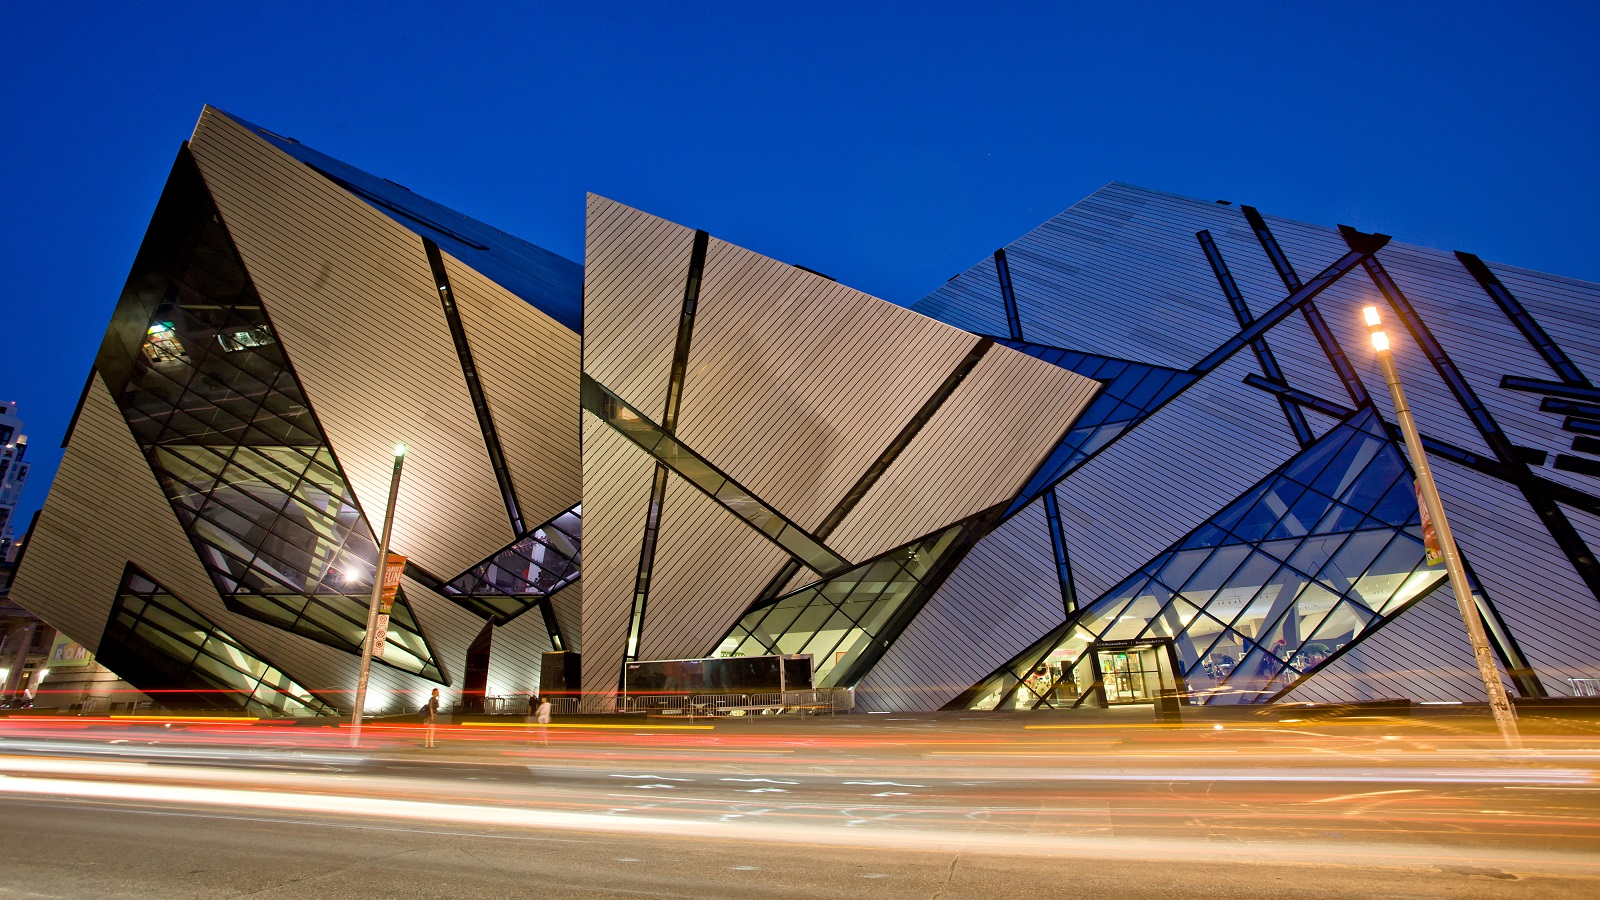 Things to do in Toronto - Royal Ontario Museum